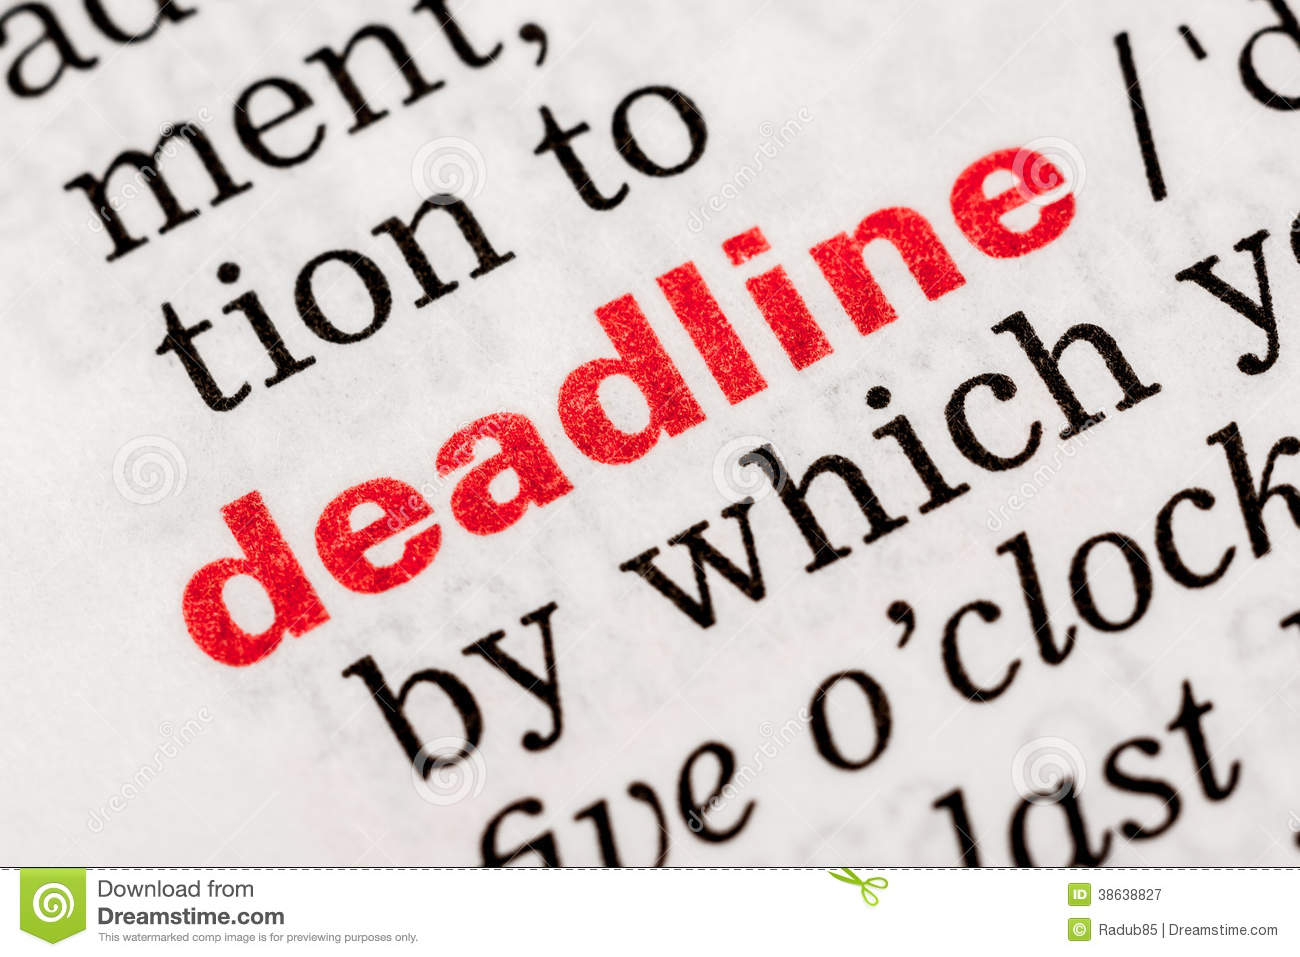 Business Administration wikipedia deadline